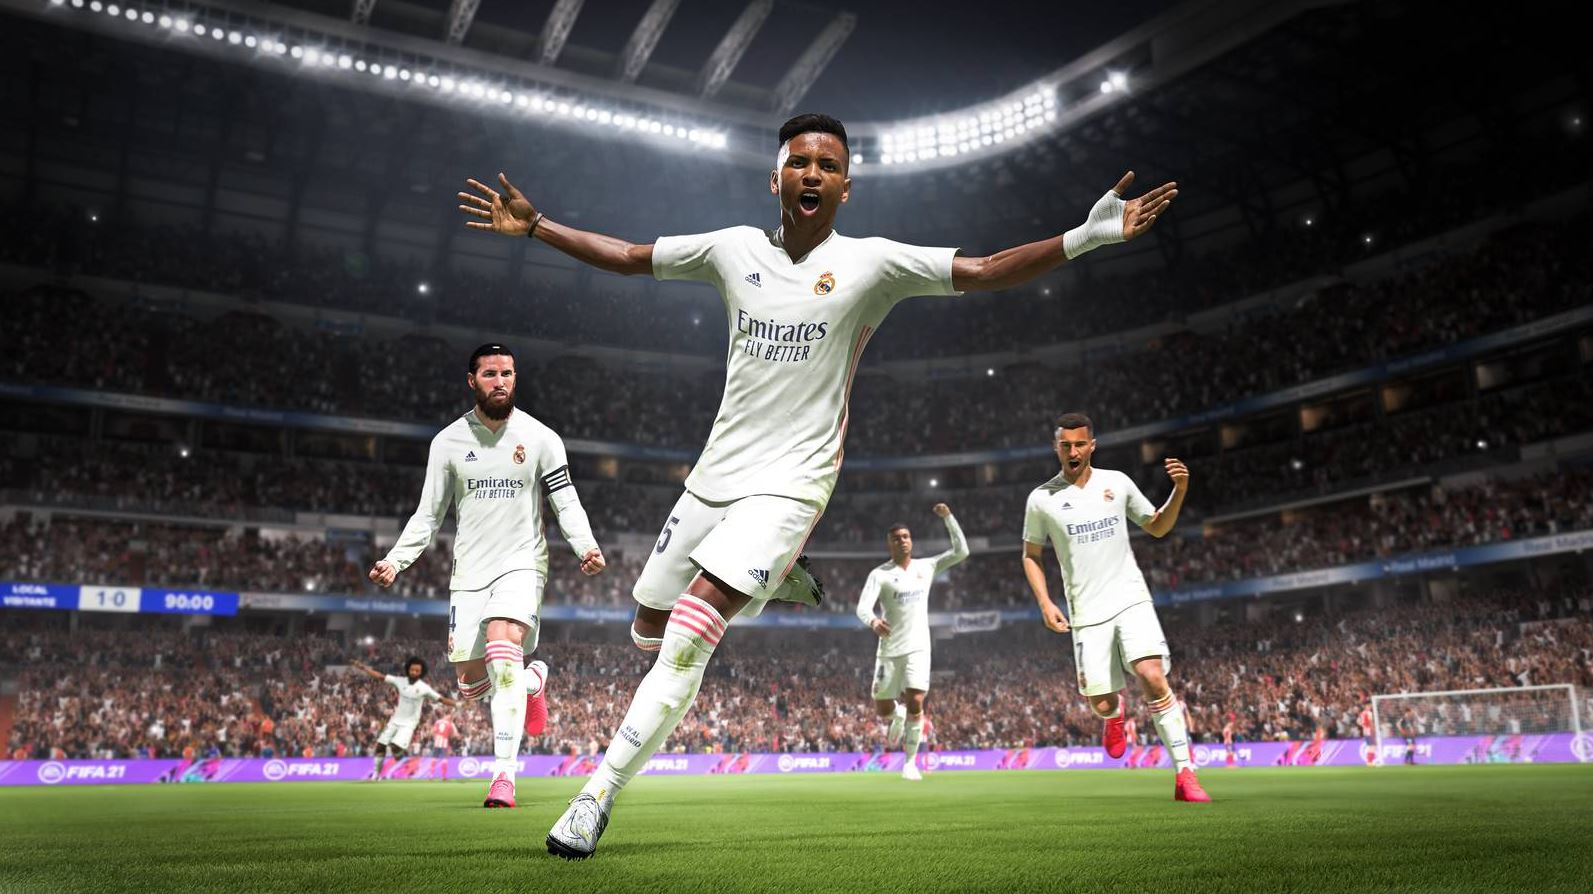 fifa-22-beta-details-and-images-leak-from-the-playstation-network